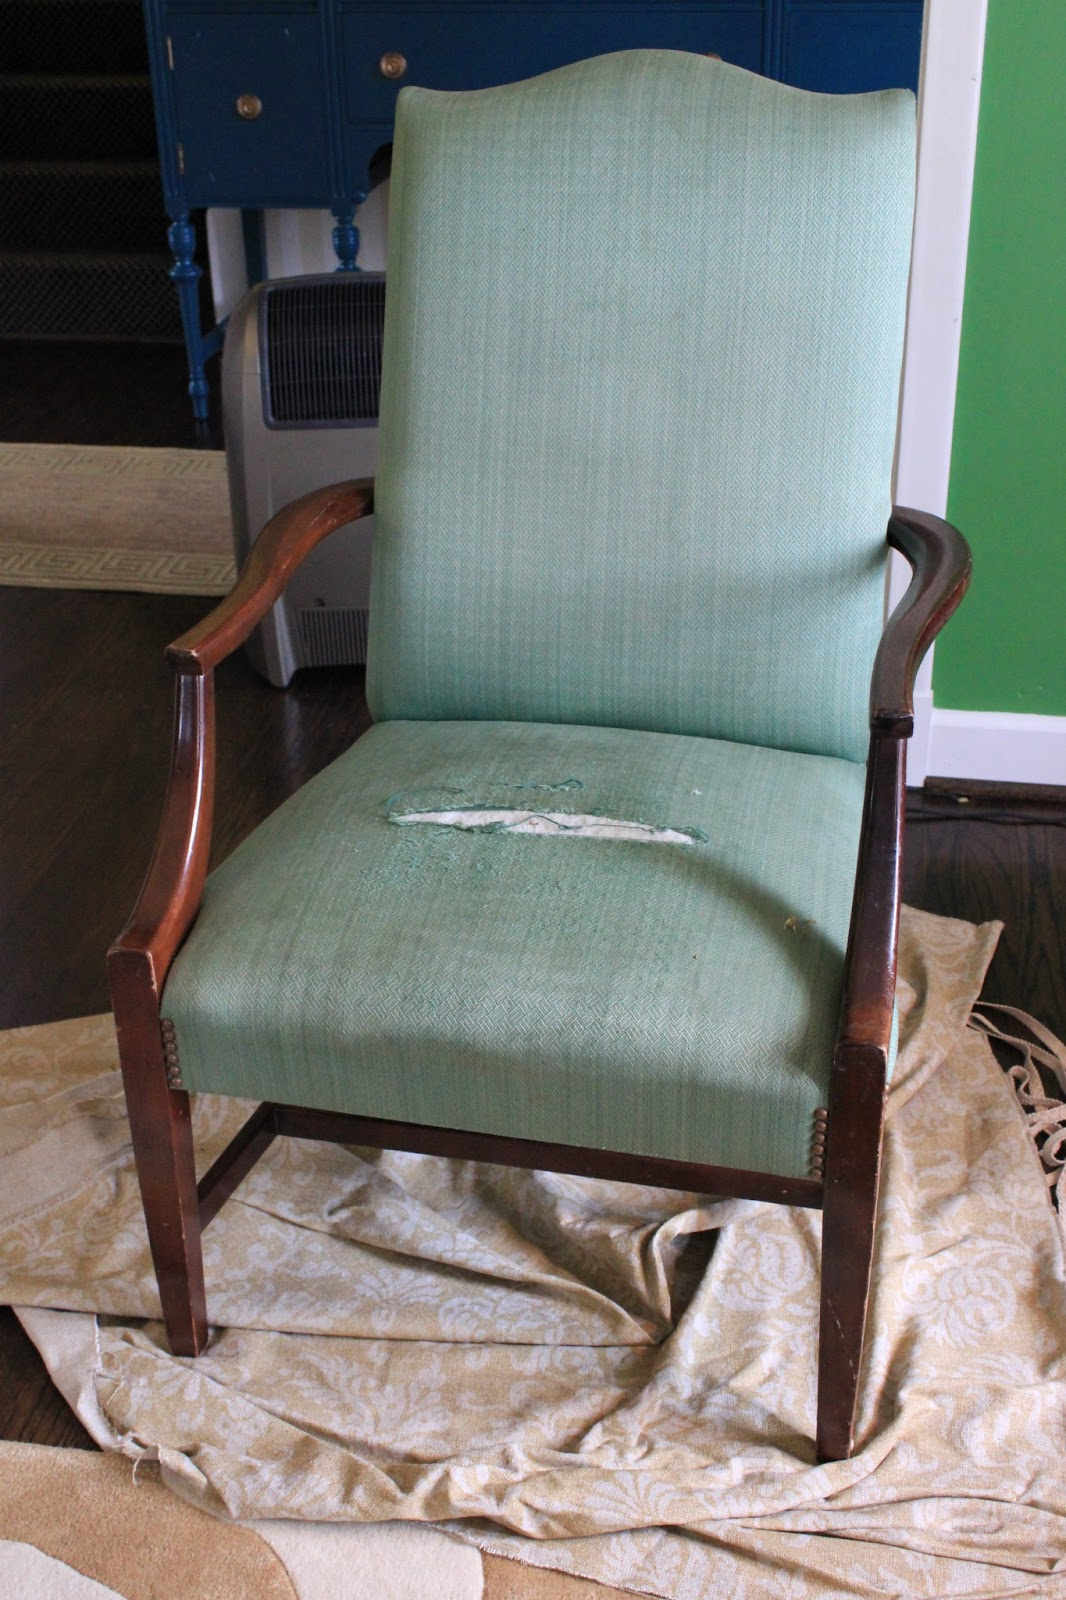 Where To Get Chairs Reupholstered Ikea Chair Cover Westhampton Diy How Reupholster A